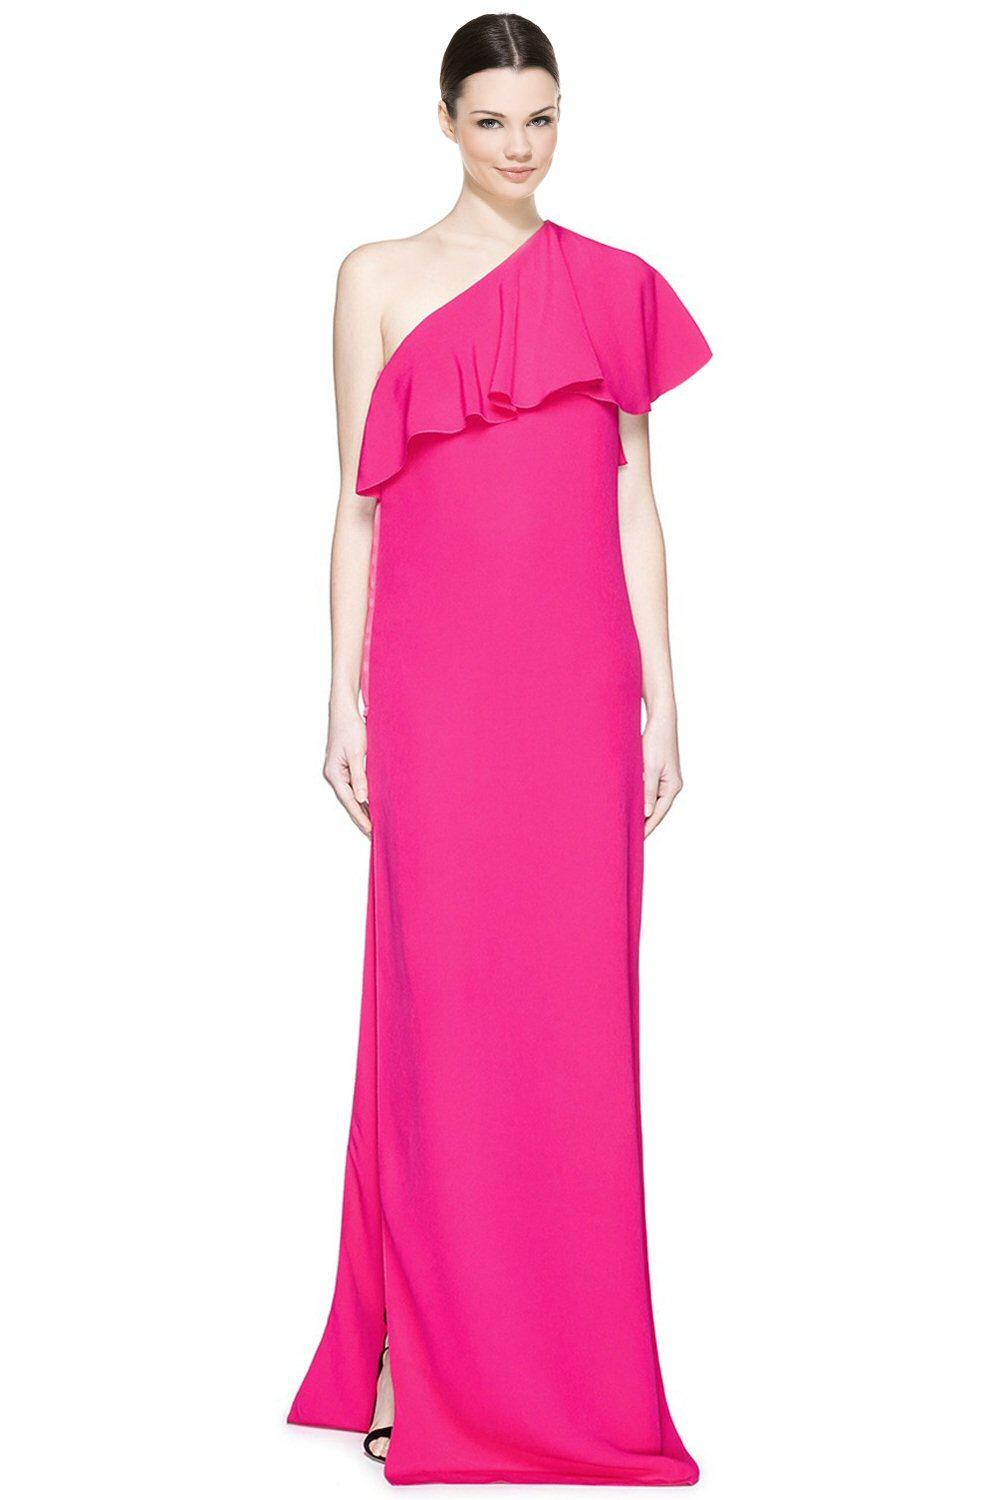 Lanvin Fuchsia Pink Ruffle One Shoulder Cady Evening Gown Dress 10 ...